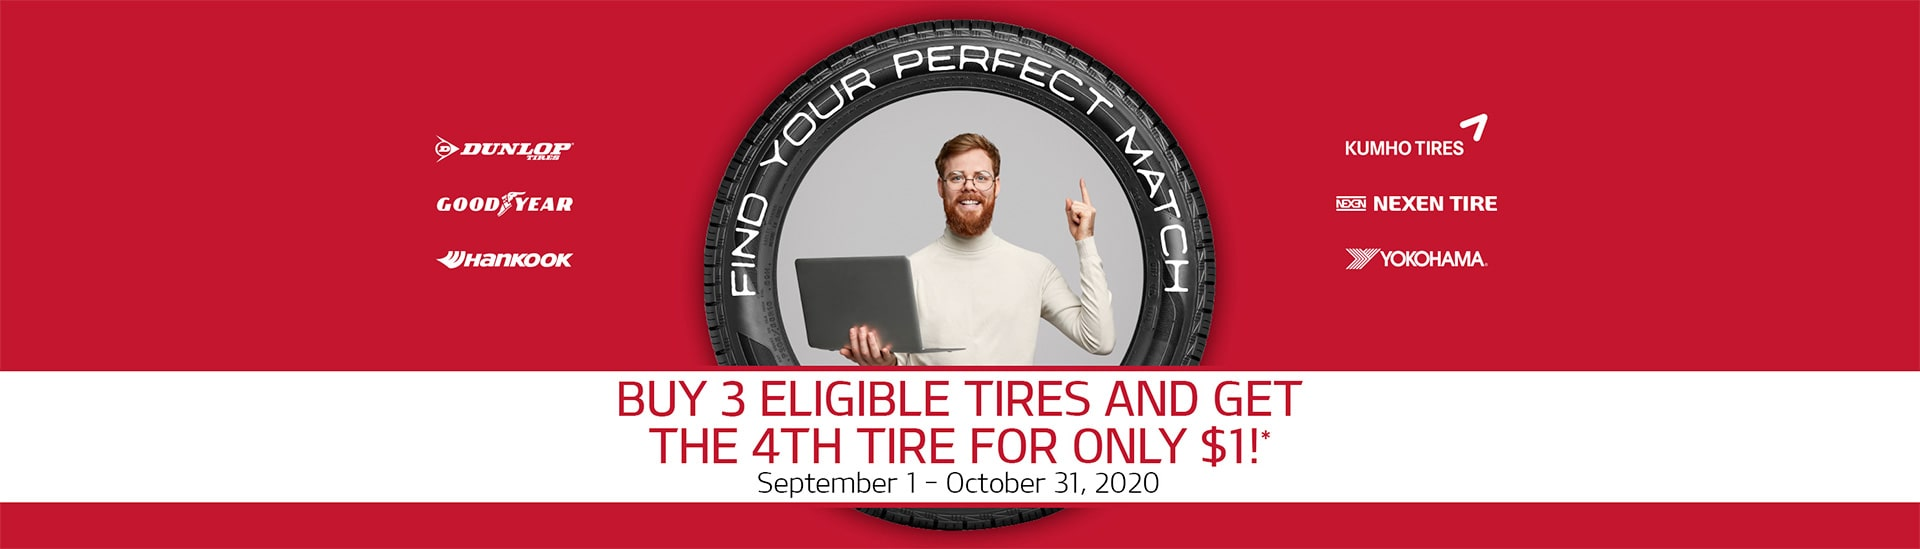 Kia Tire Offer